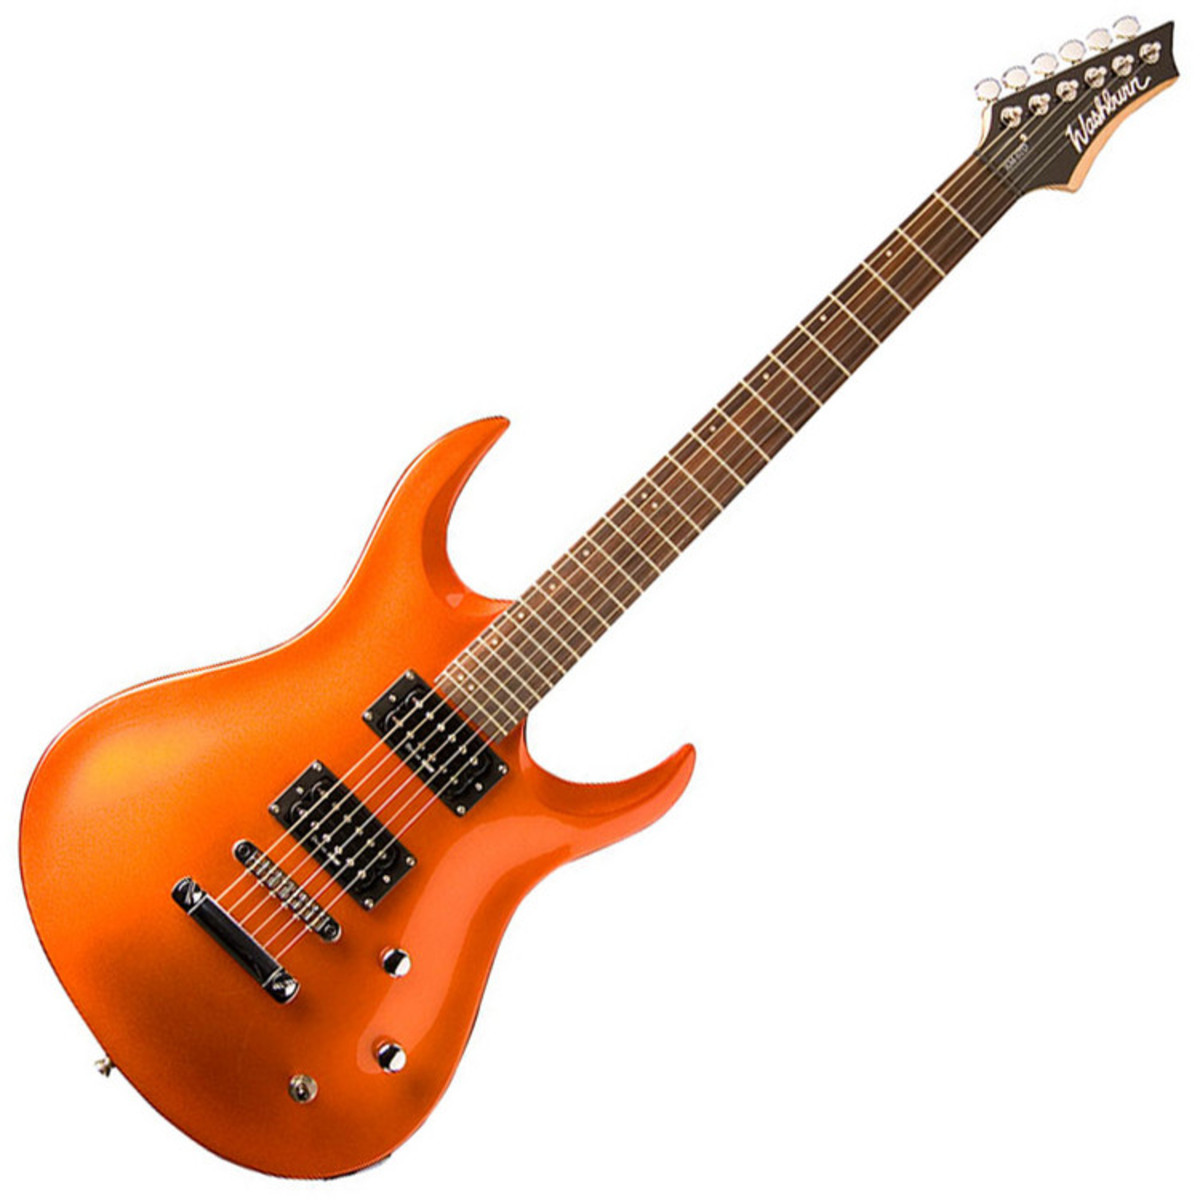 disc washburn xm series std2tng electric guitar tangerine at gear4music. Black Bedroom Furniture Sets. Home Design Ideas